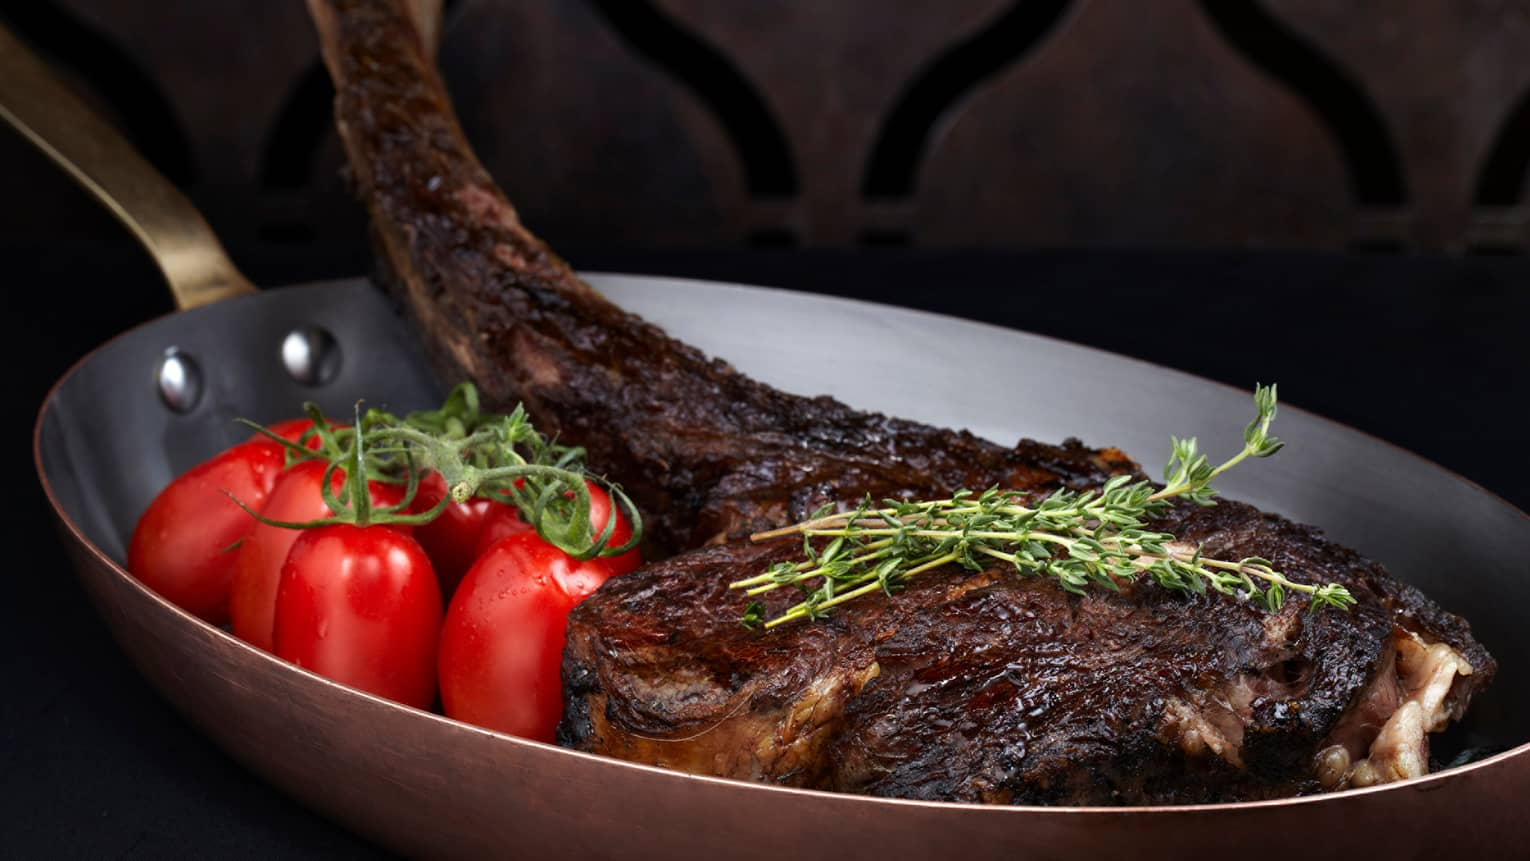 Wagyu beef tomahawk 30 ounce grilled chop in pan with whole tomatoes, herbs